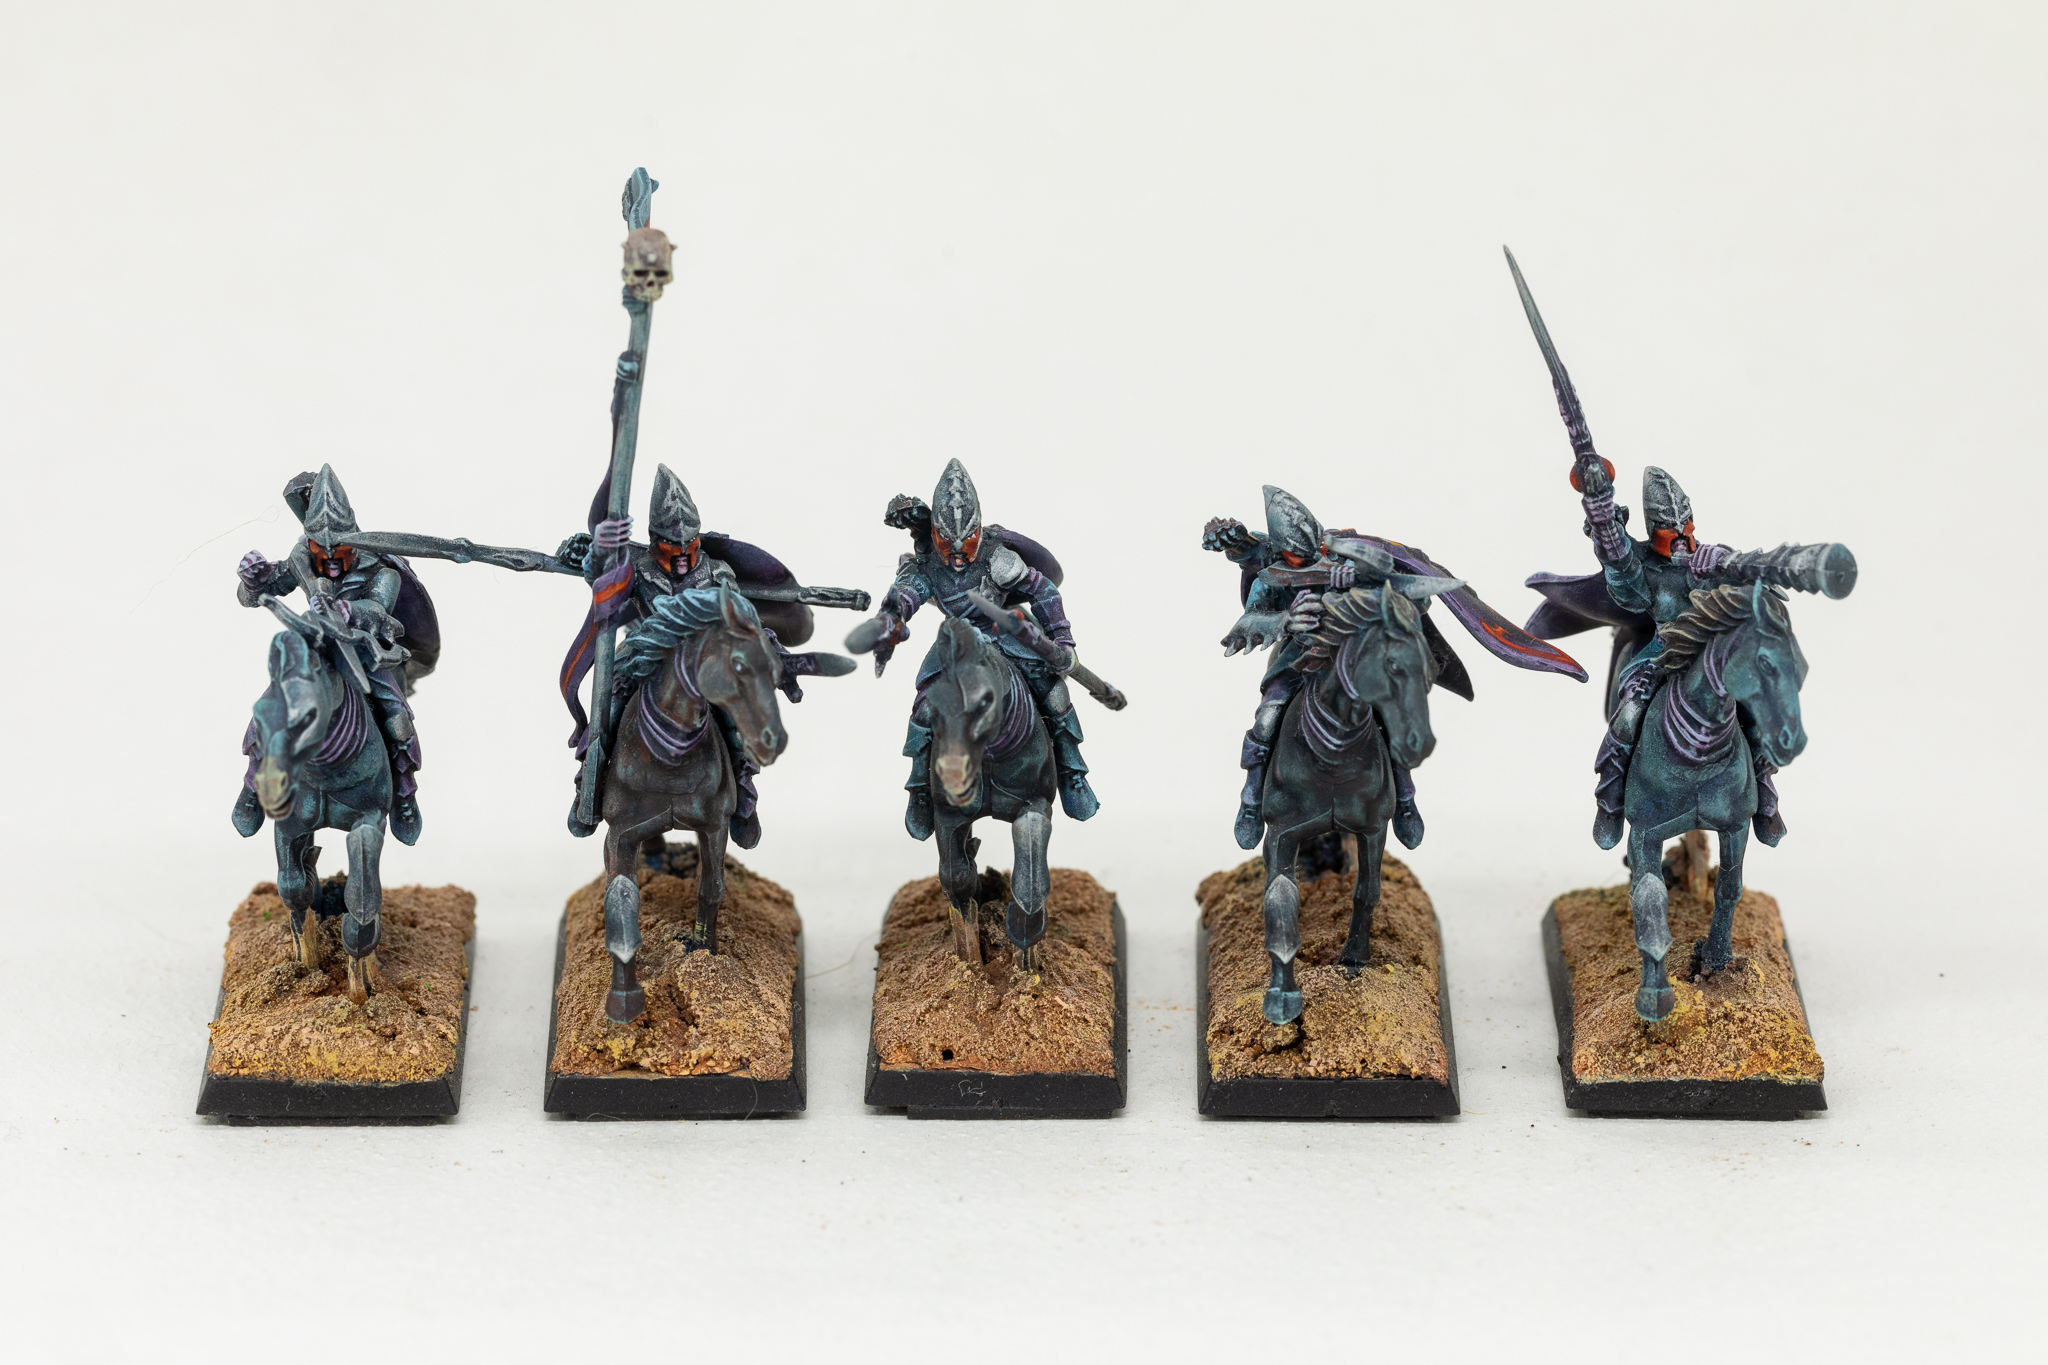 vente-figurines-elfesnoirs0010.jpg